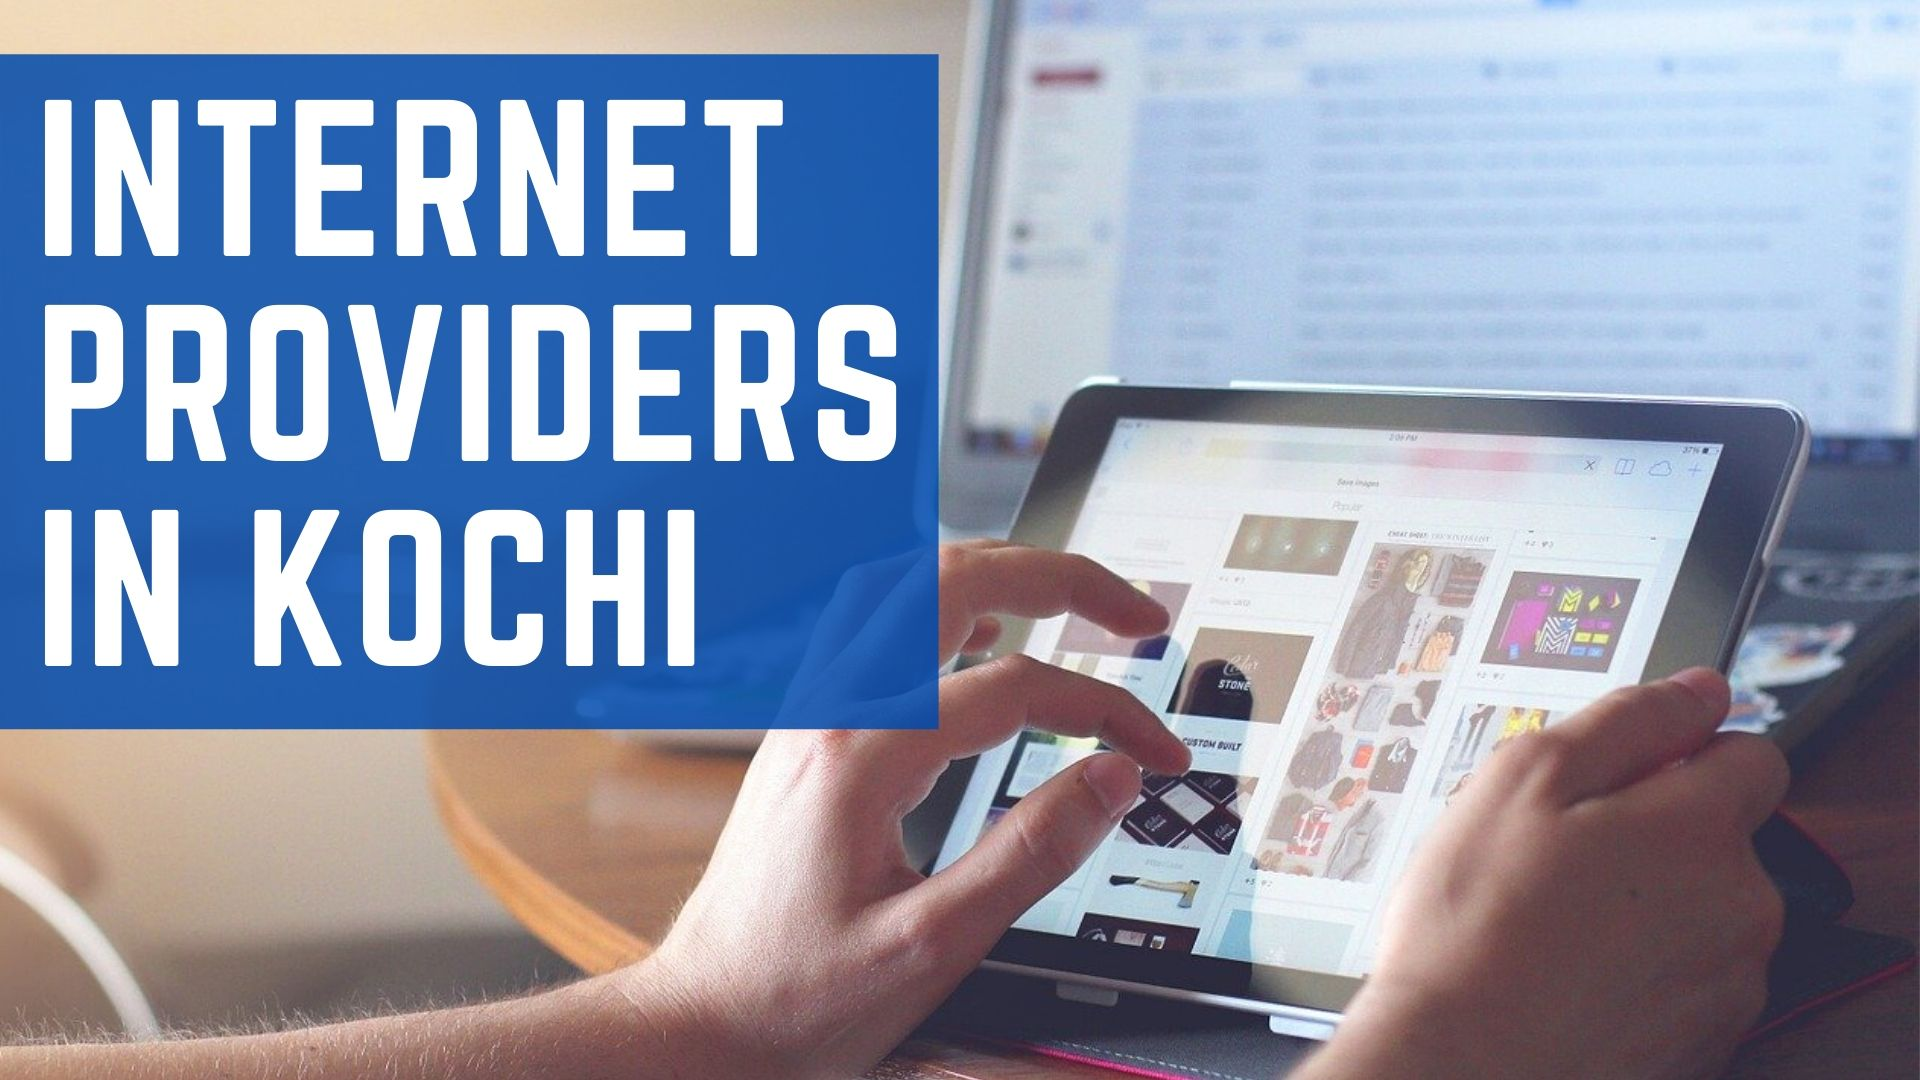 internet providers in kochi